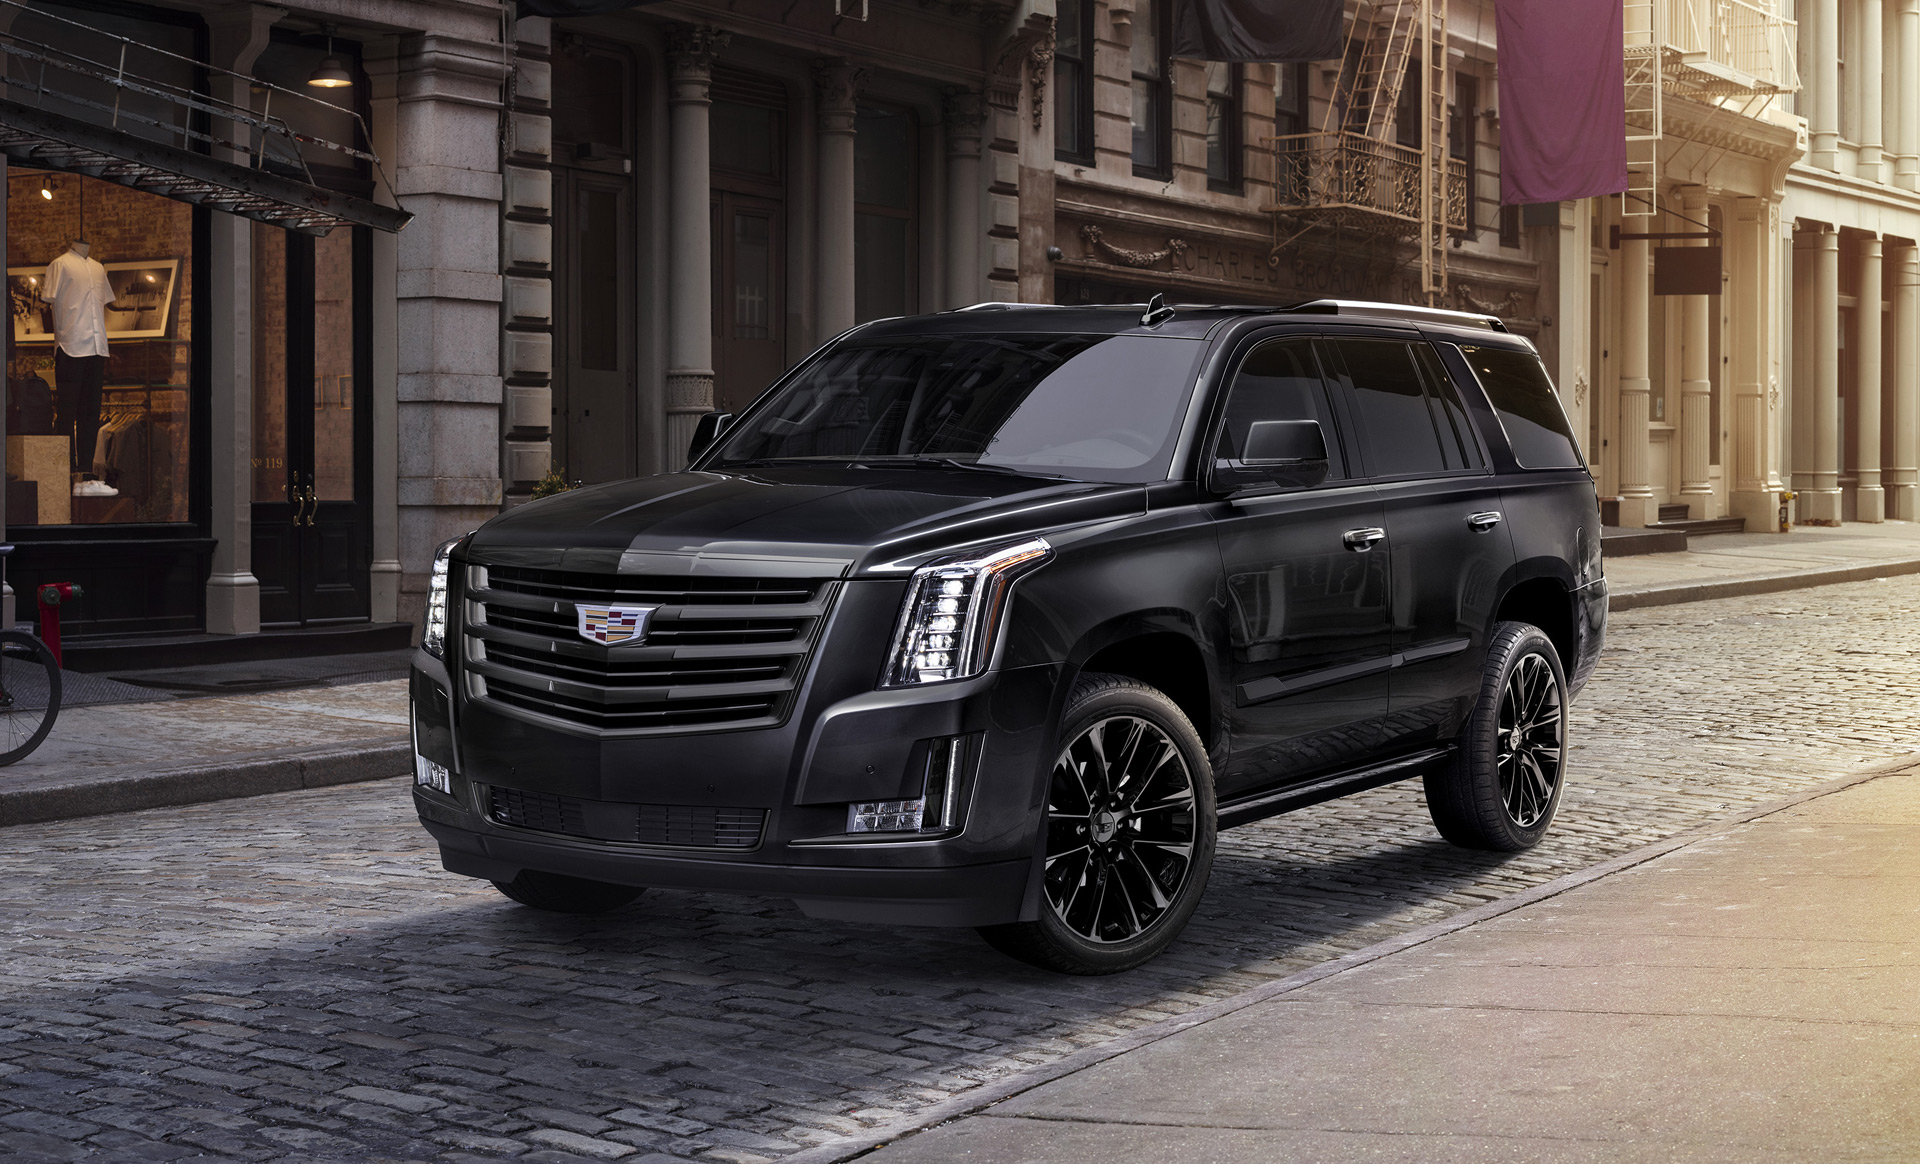 Is GM planning an electric Cadillac Escalade?